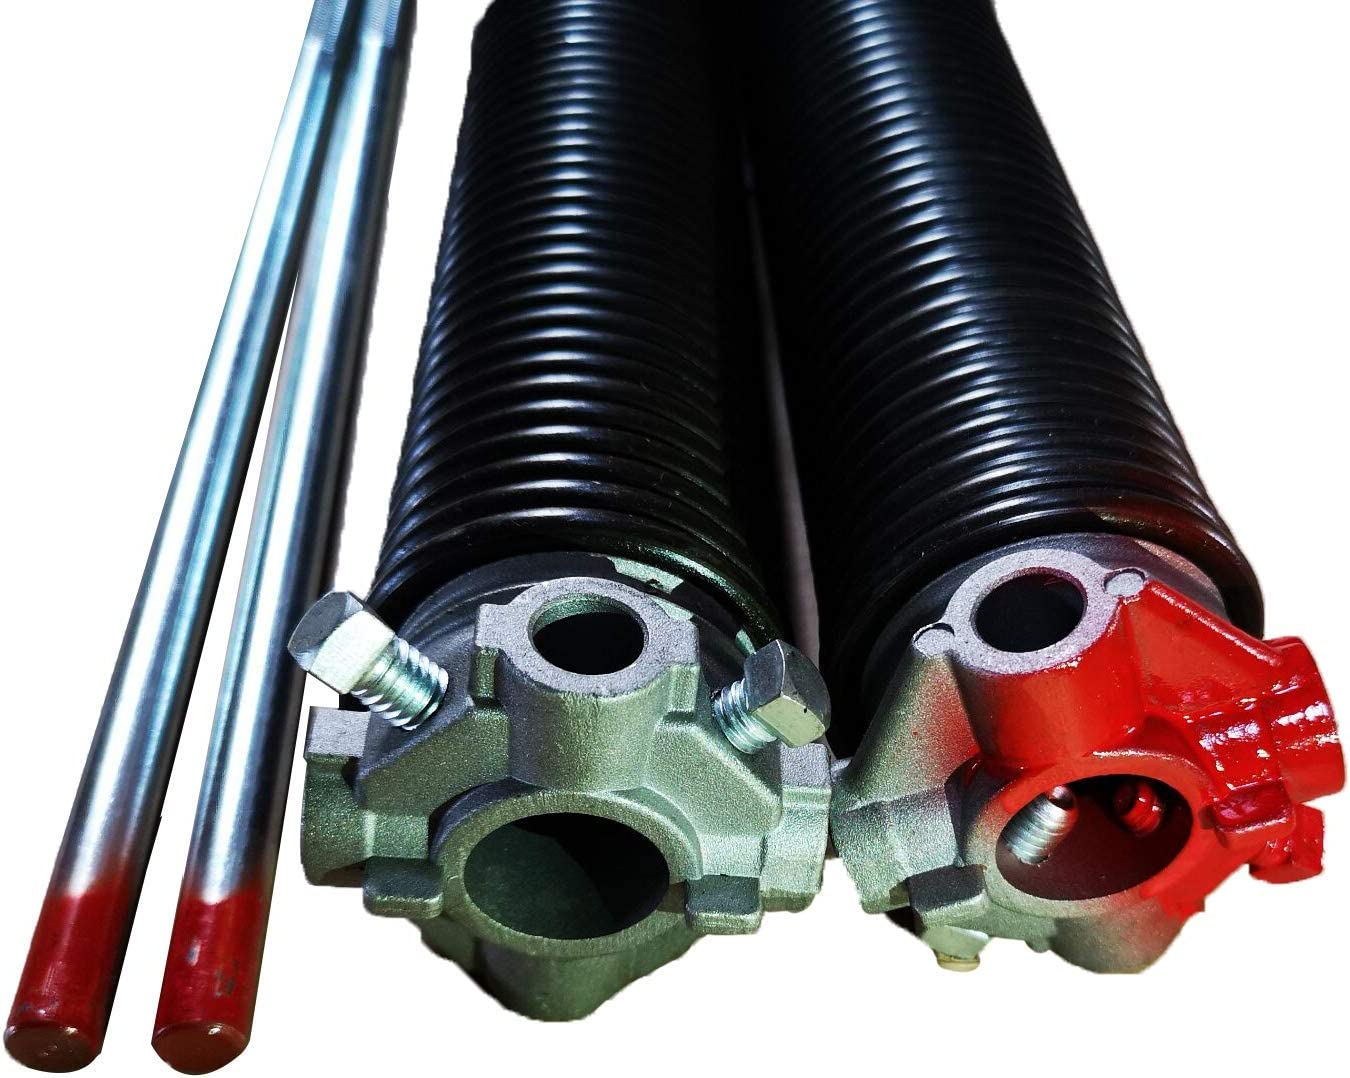 Garage Door Torsion Springs 1.75''(Pair) with Non-Slip Winding Bars, Coated Torsion Springs with a Minimum of 10,000 Cycles (0.225X1.75''X32'')